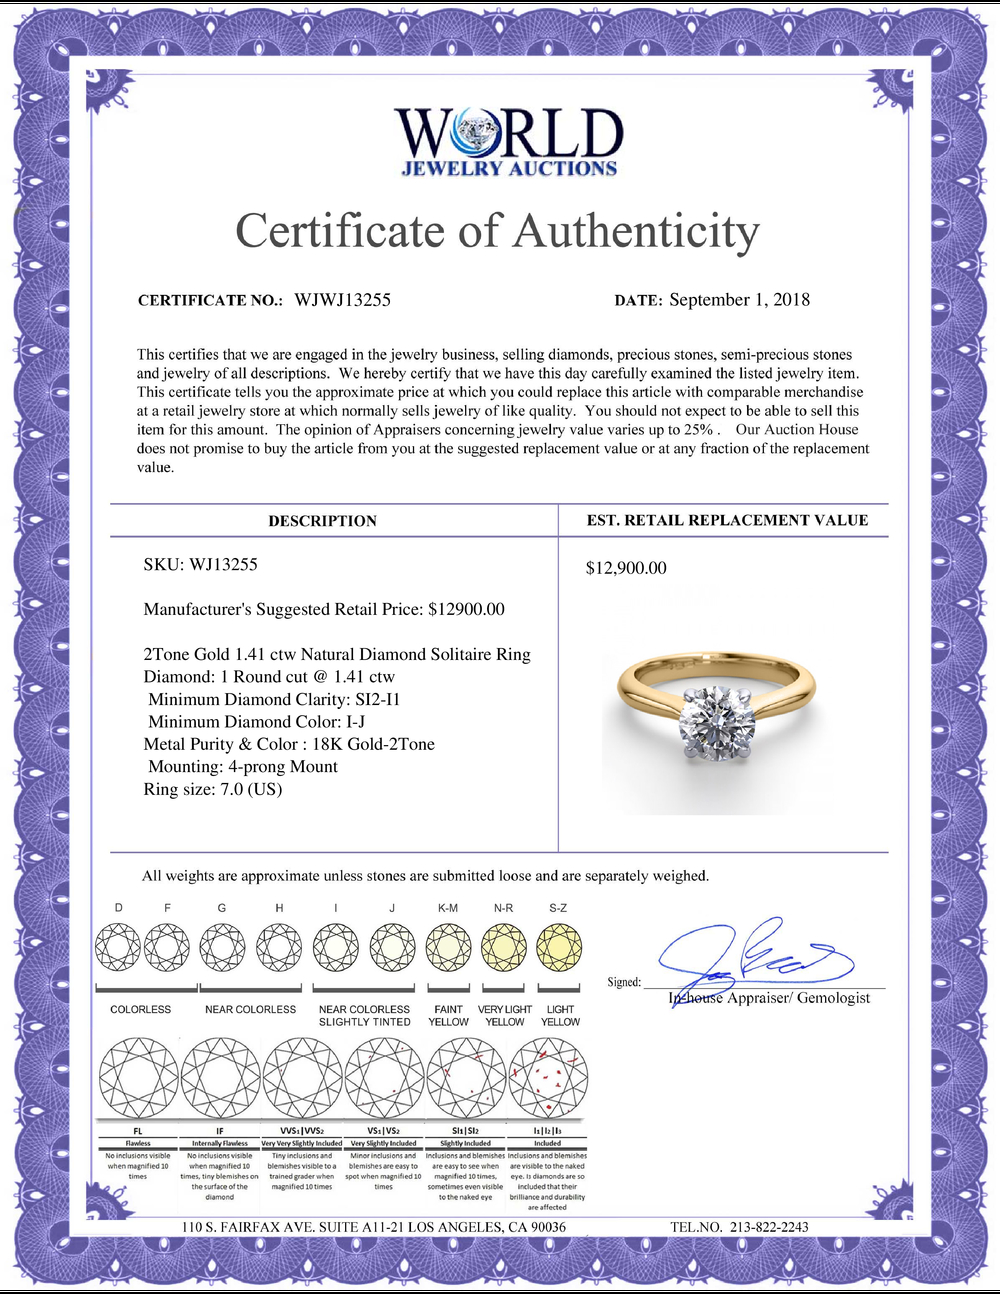 Lot 4066: 18K 2Tone Gold 1.41 ctw Natural Diamond Solitaire Ring - REF-463N6R-WJ13255